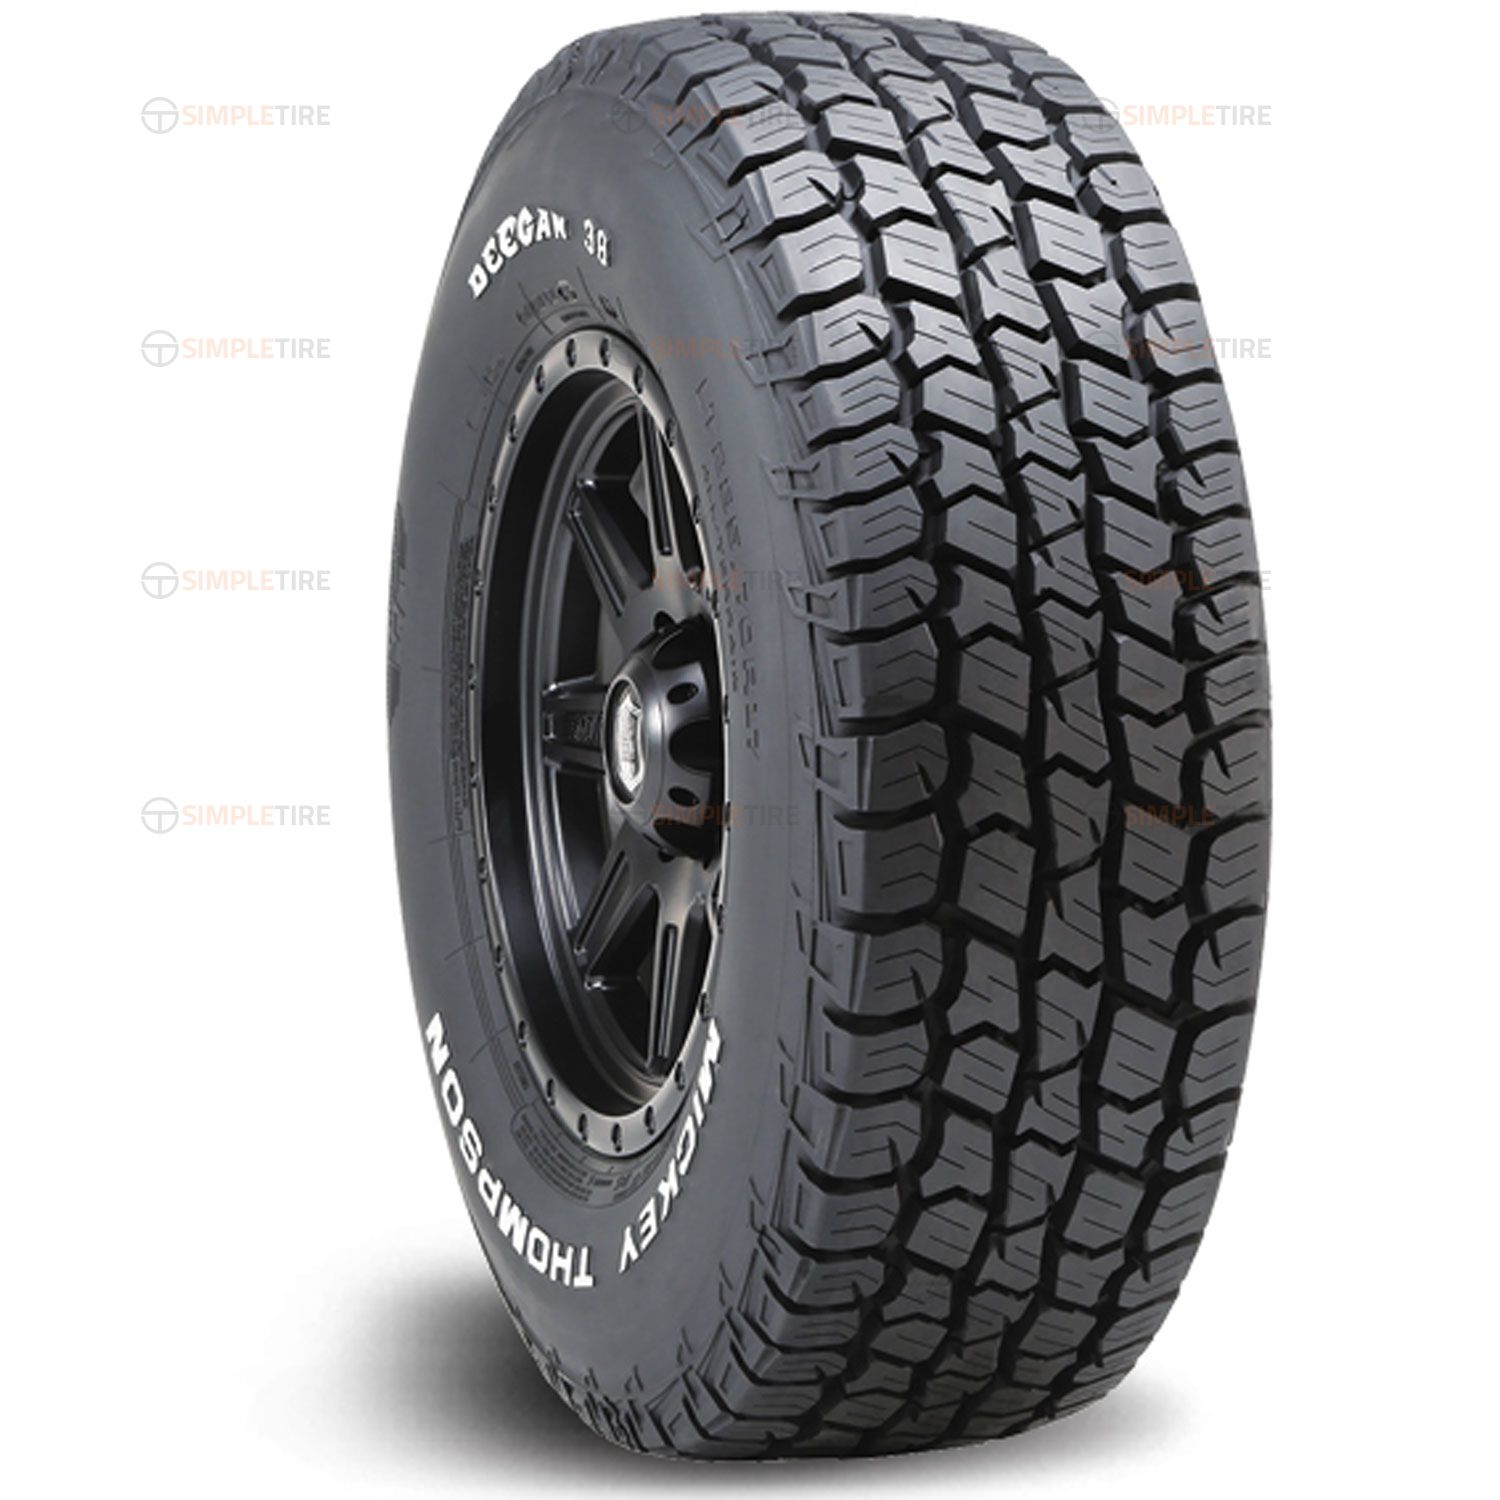 90000029947 P275/55R20 Deegan 38 A/T Mickey Thompson